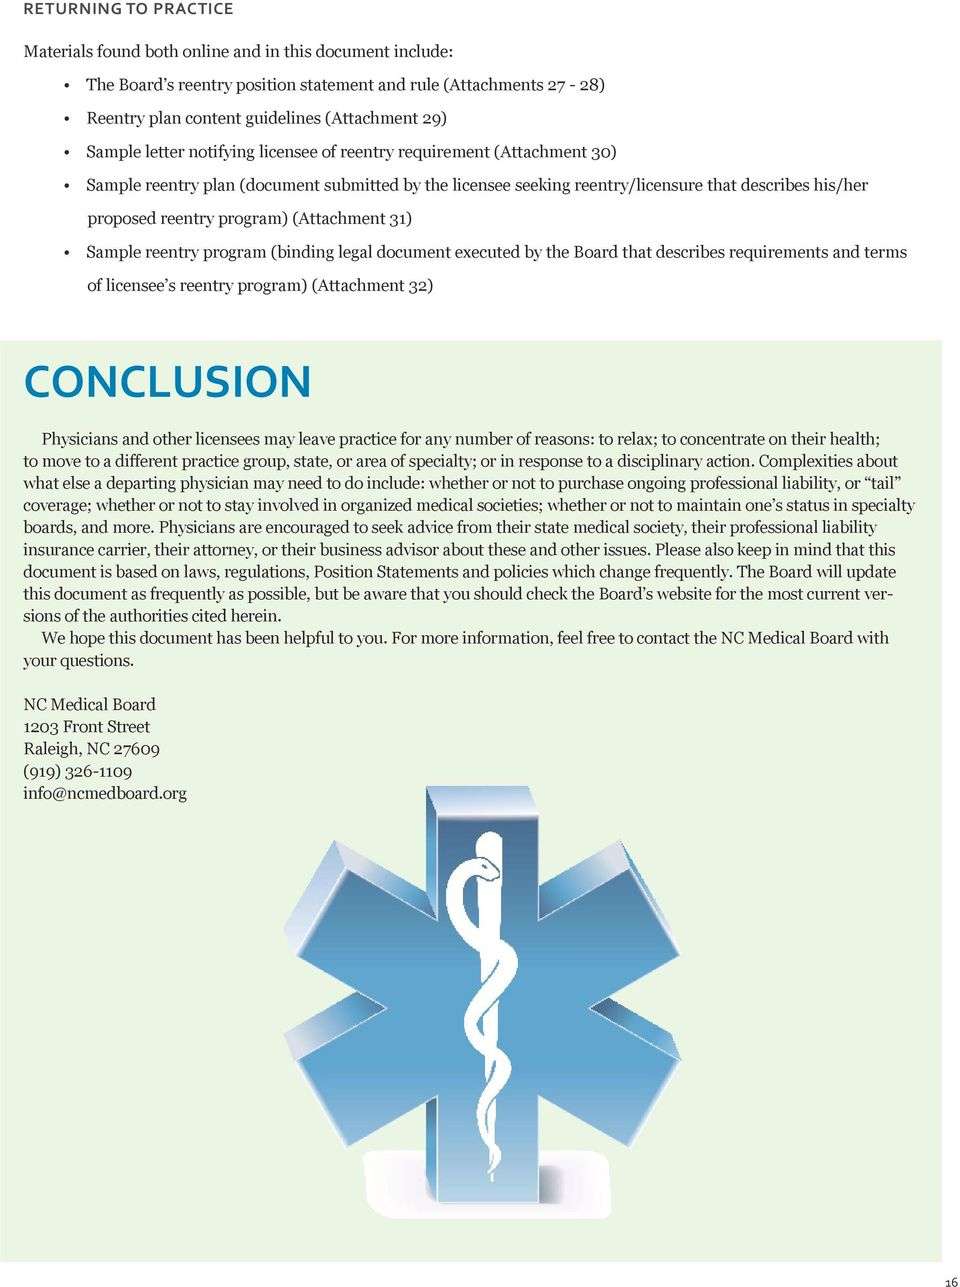 The Doctor Is Out A Physician S Guide To Closing A Practice